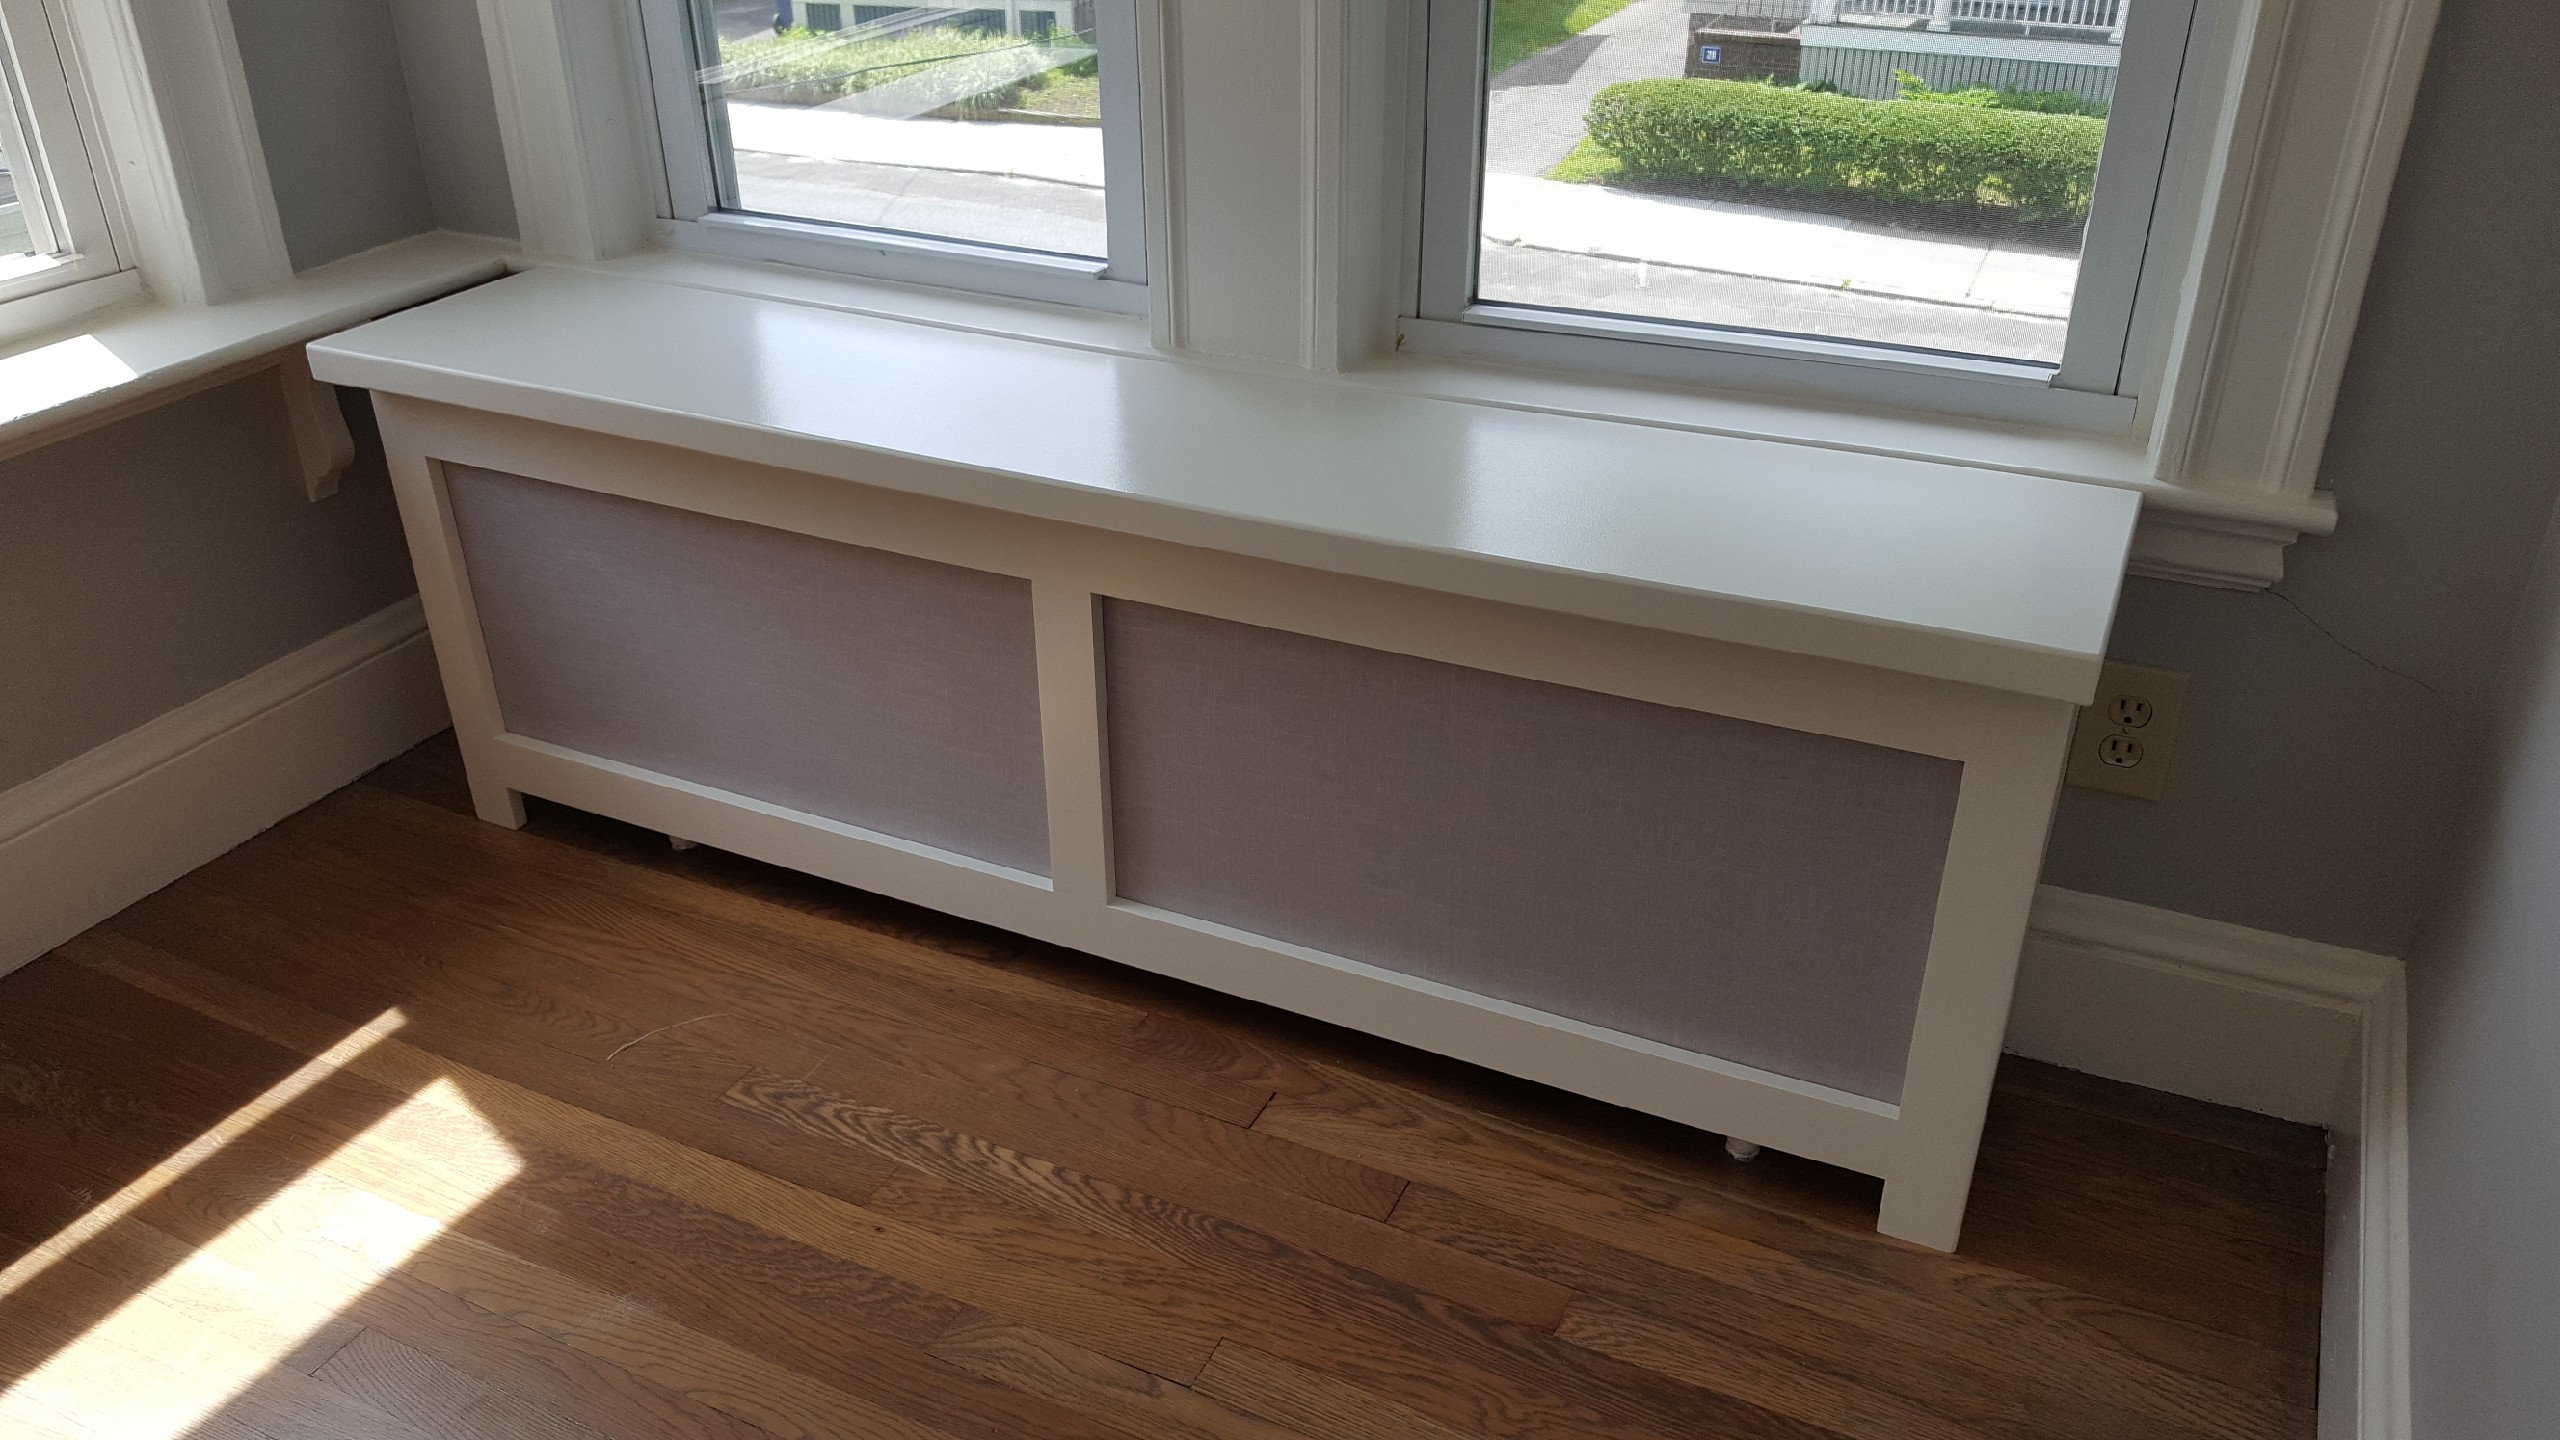 Long white radiator cover with fabric panels